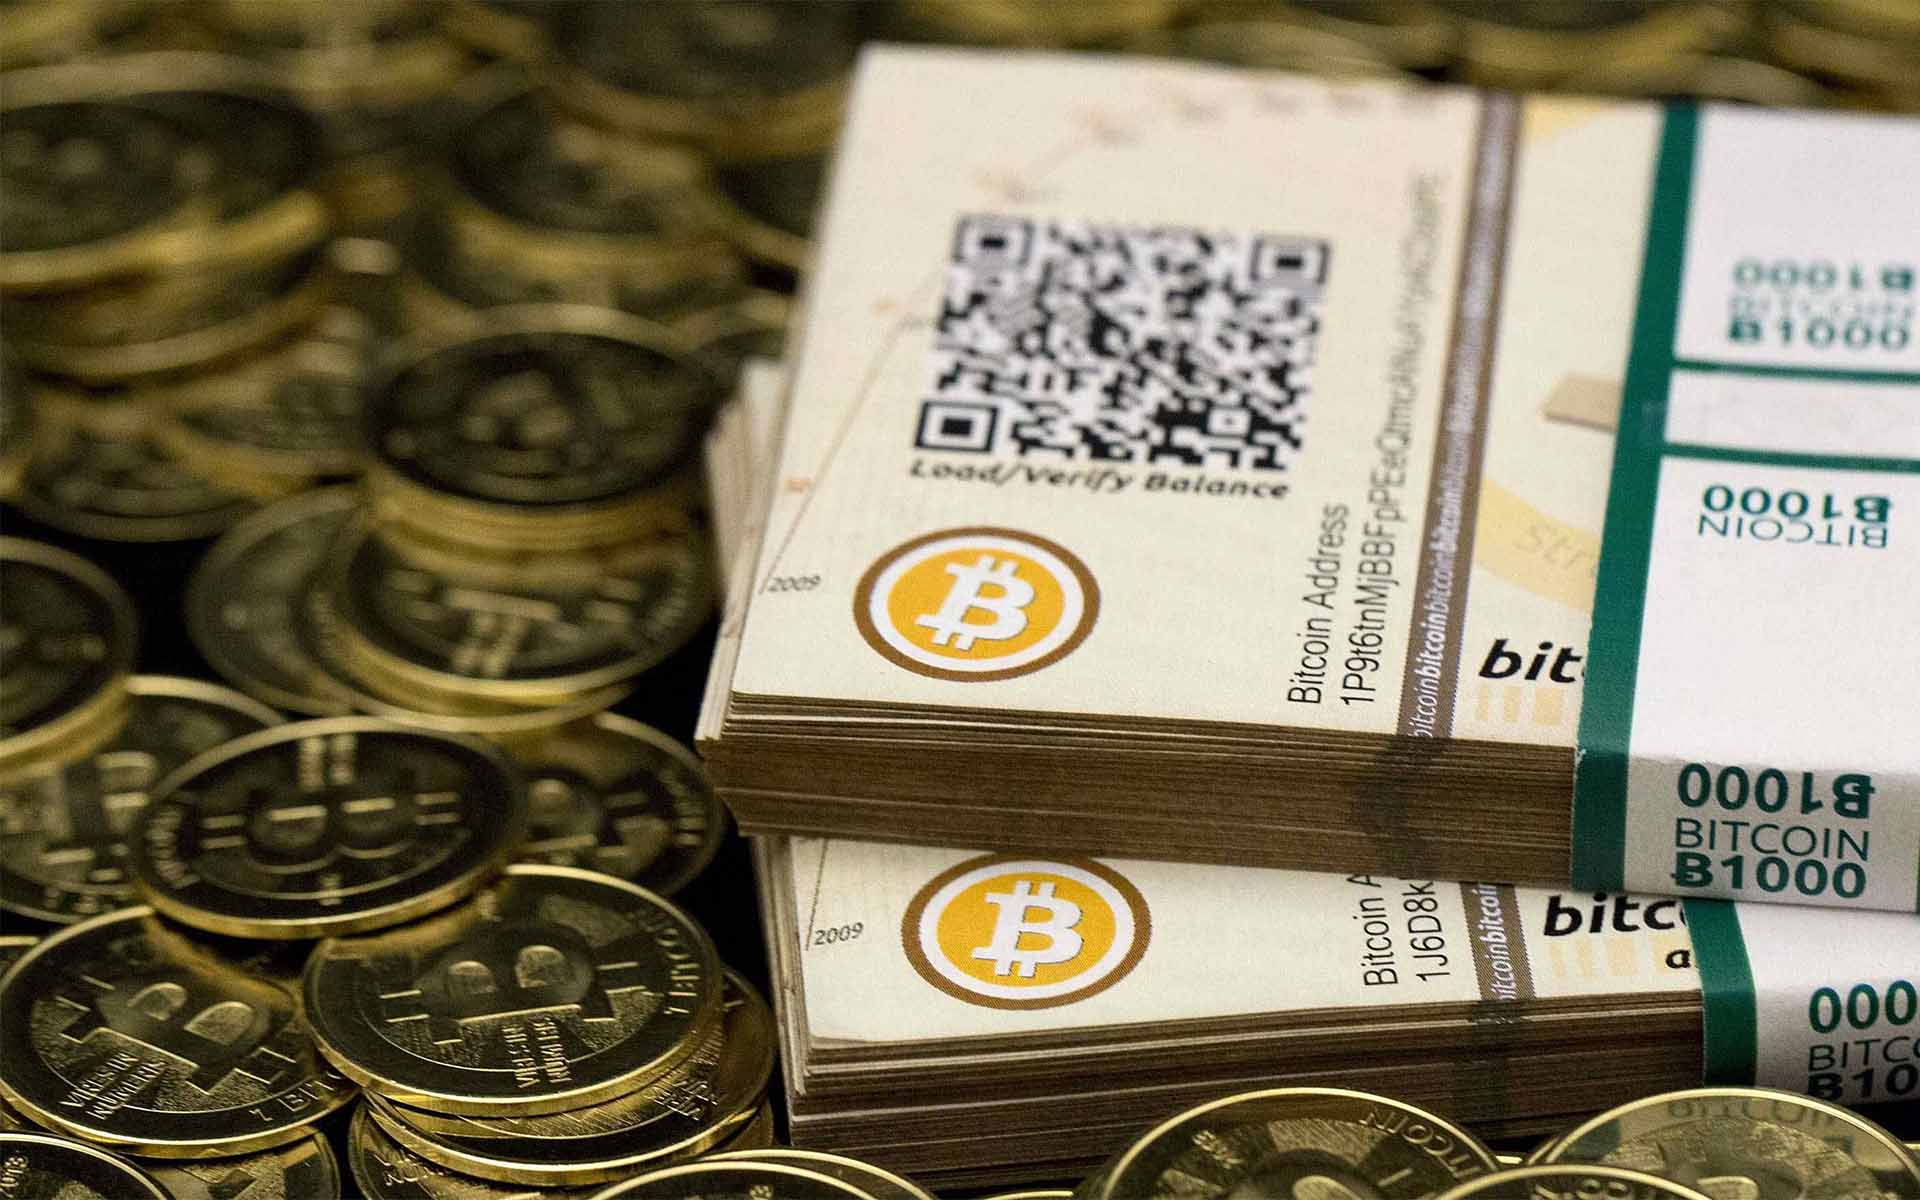 It's Bitcoin Bonuses This Year for Some Wall Street Bankers and Traders